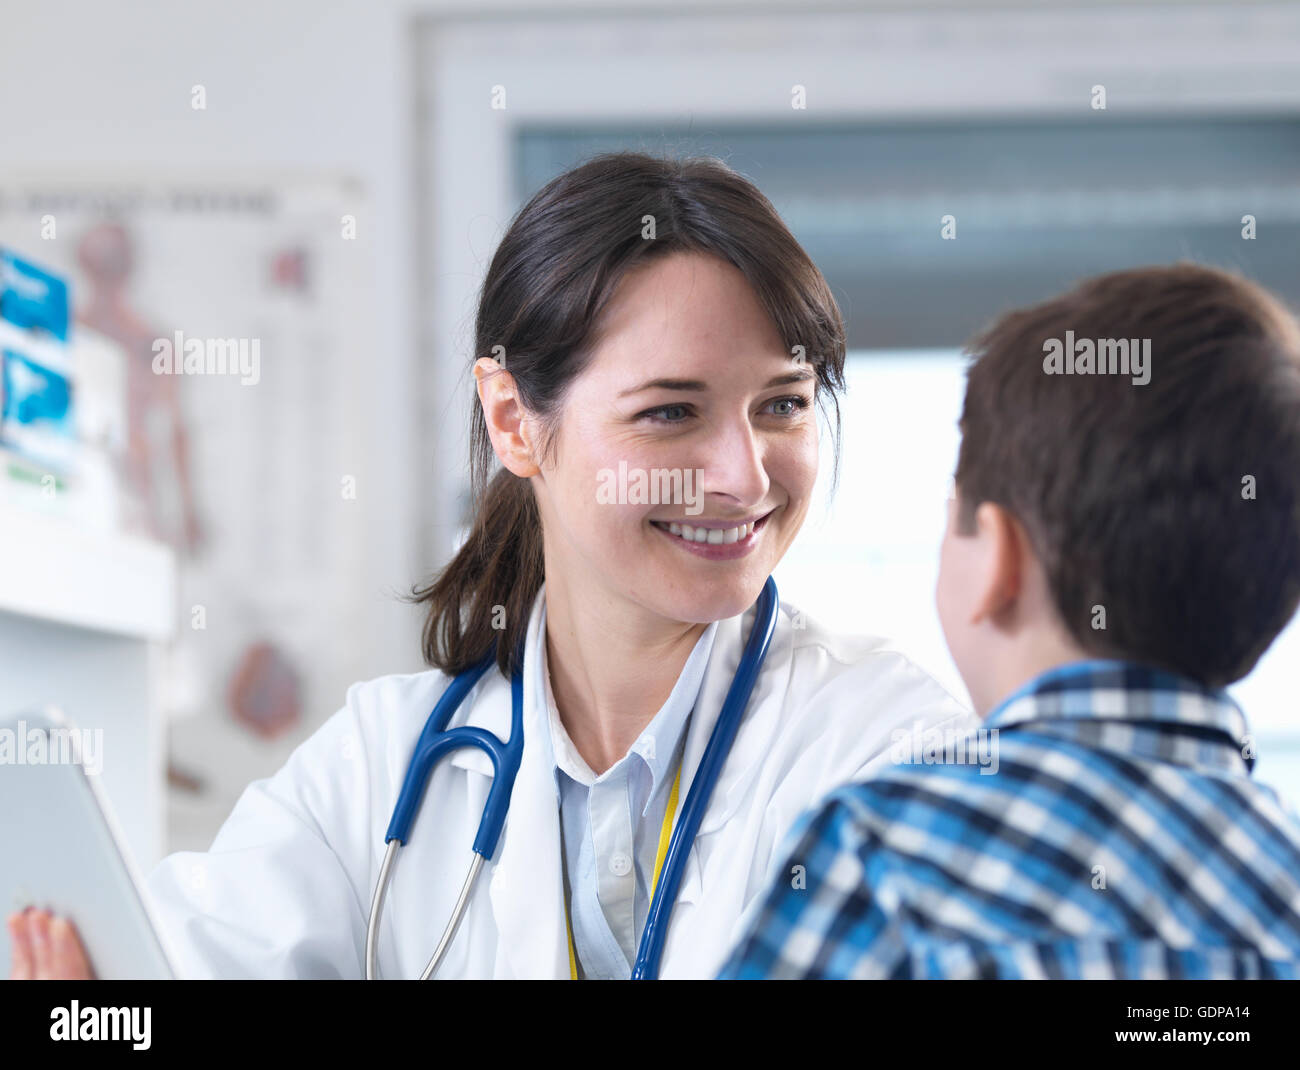 Doctor smiling at boy - Stock Image